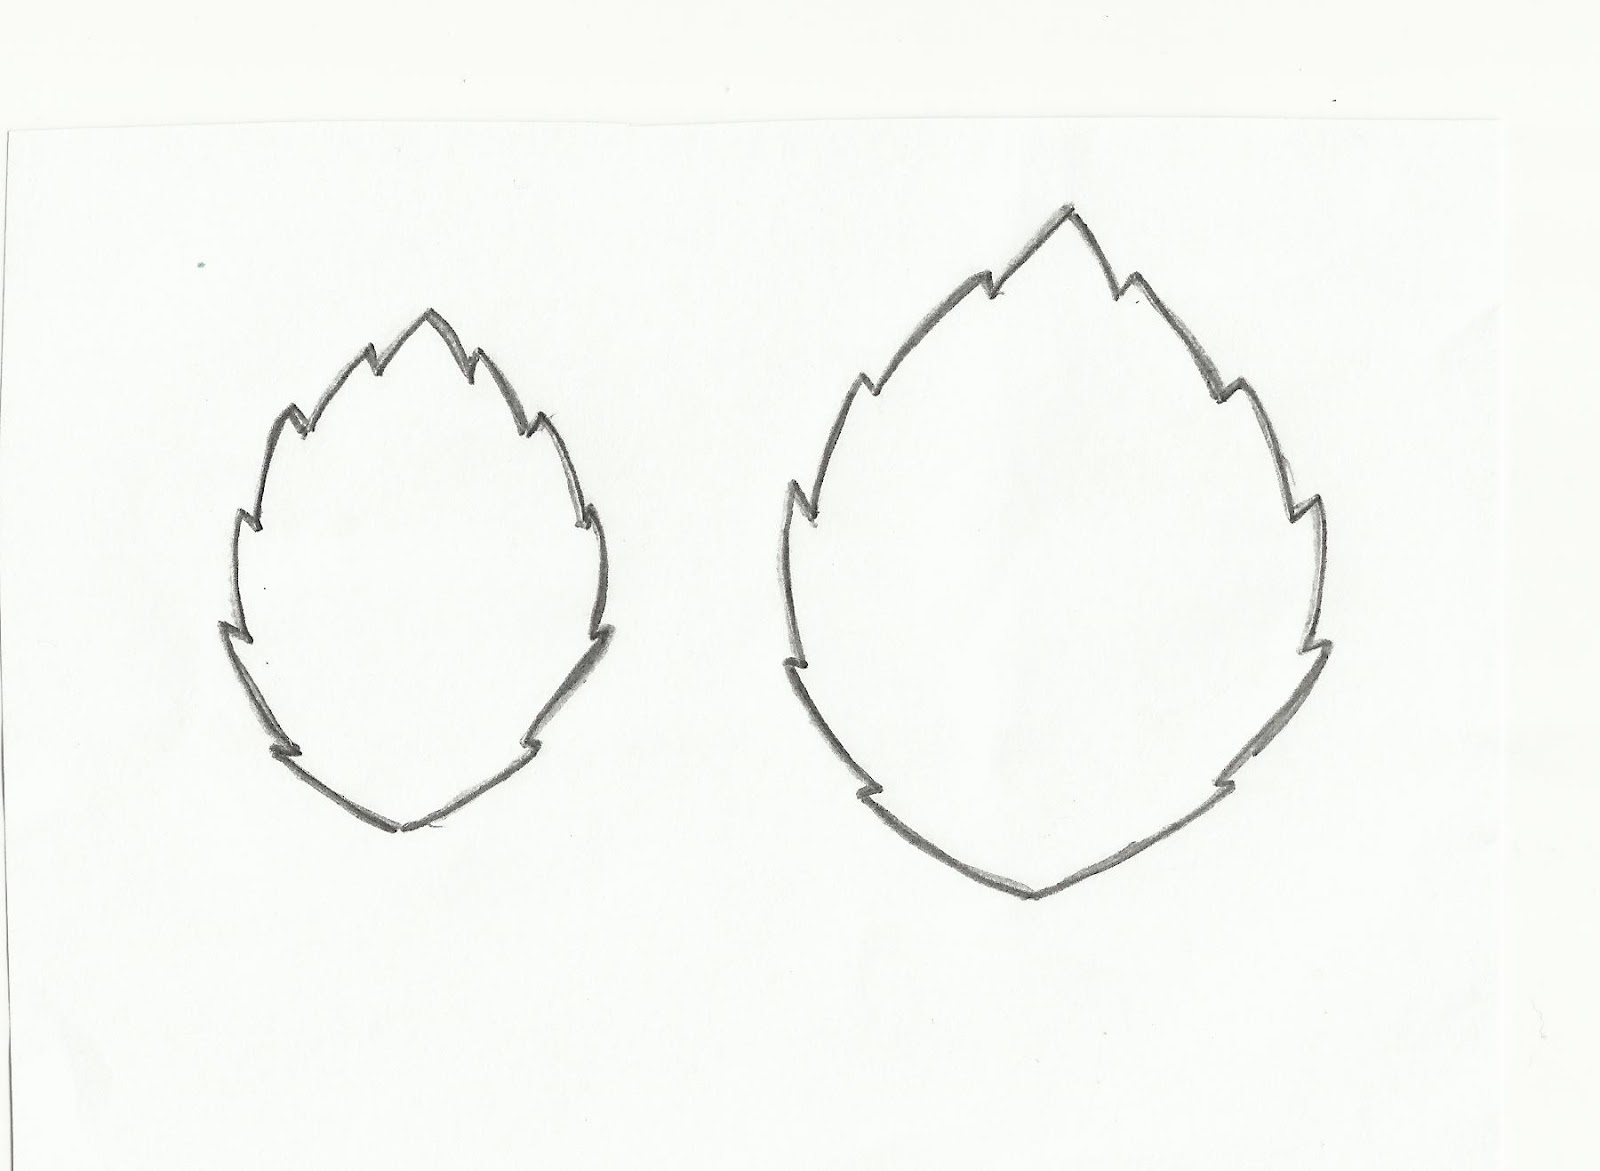 Leaf Shapes for Crafts http://clare-buswell.blogspot.com/2012/05/leaf-tutorial.html